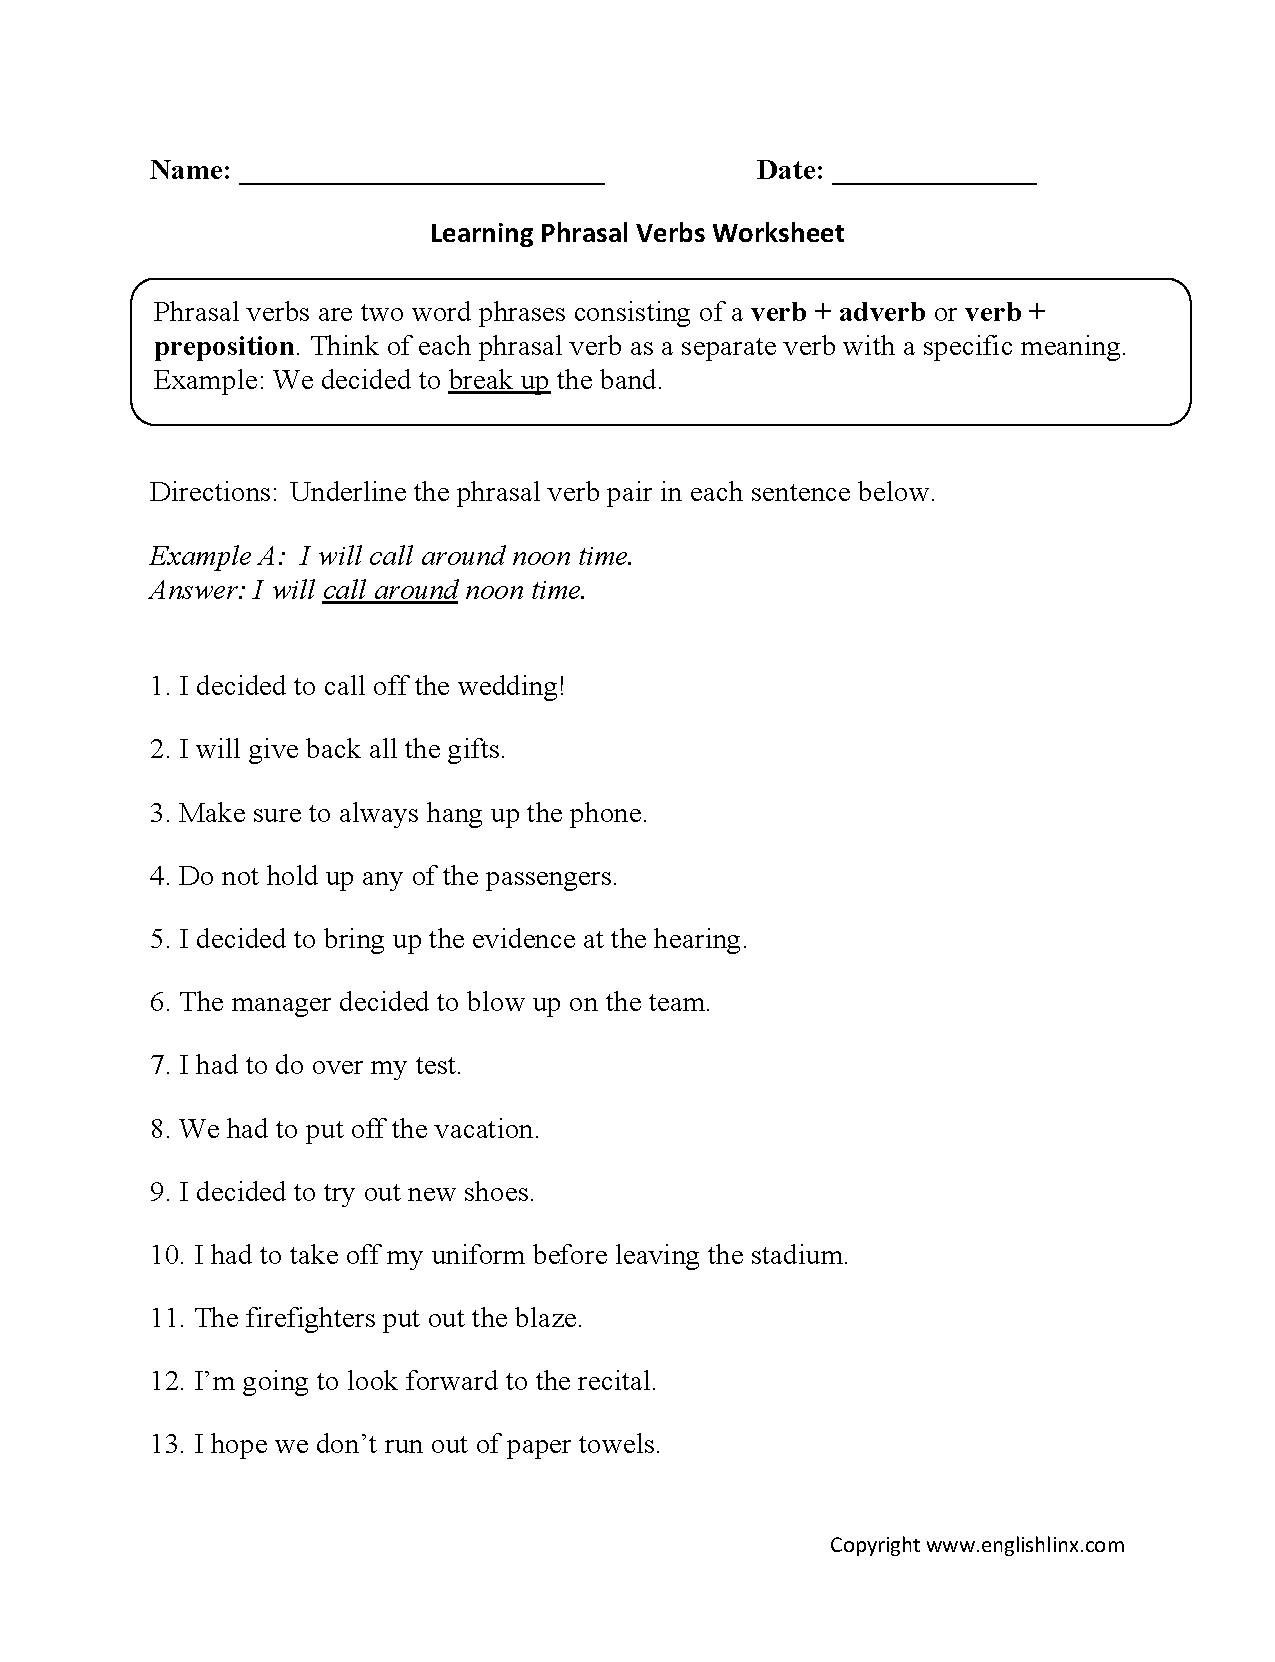 medium resolution of Phrasal Verbs Worksheets   Verb worksheets